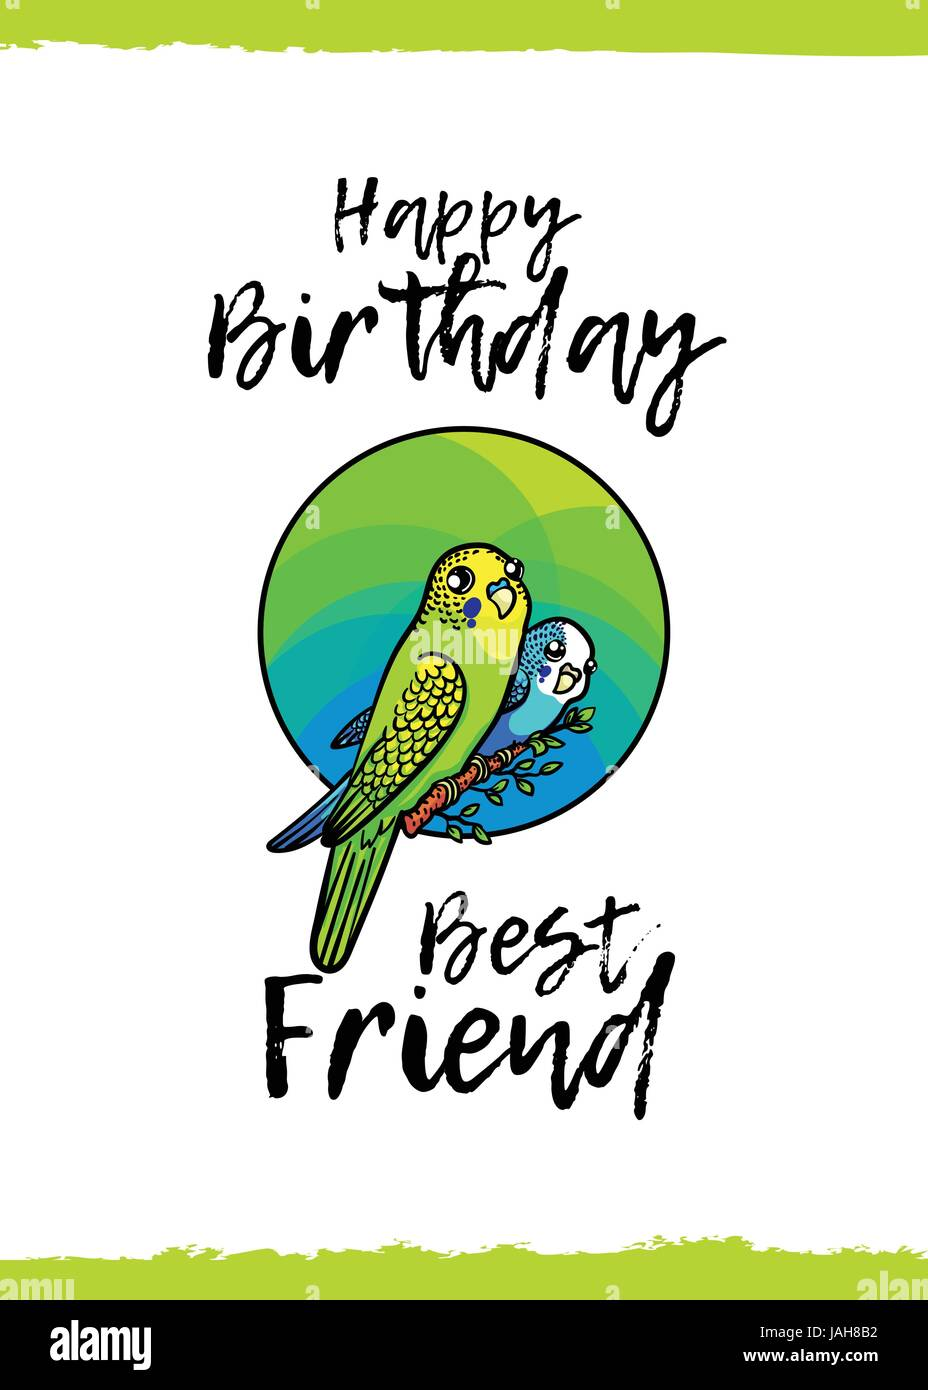 Happy birthday best friend greeting card with a cute animal and best friend greeting card with a cute animal and kind wish cartoon style a pair of colored small parrots on branch in circle suita kristyandbryce Image collections